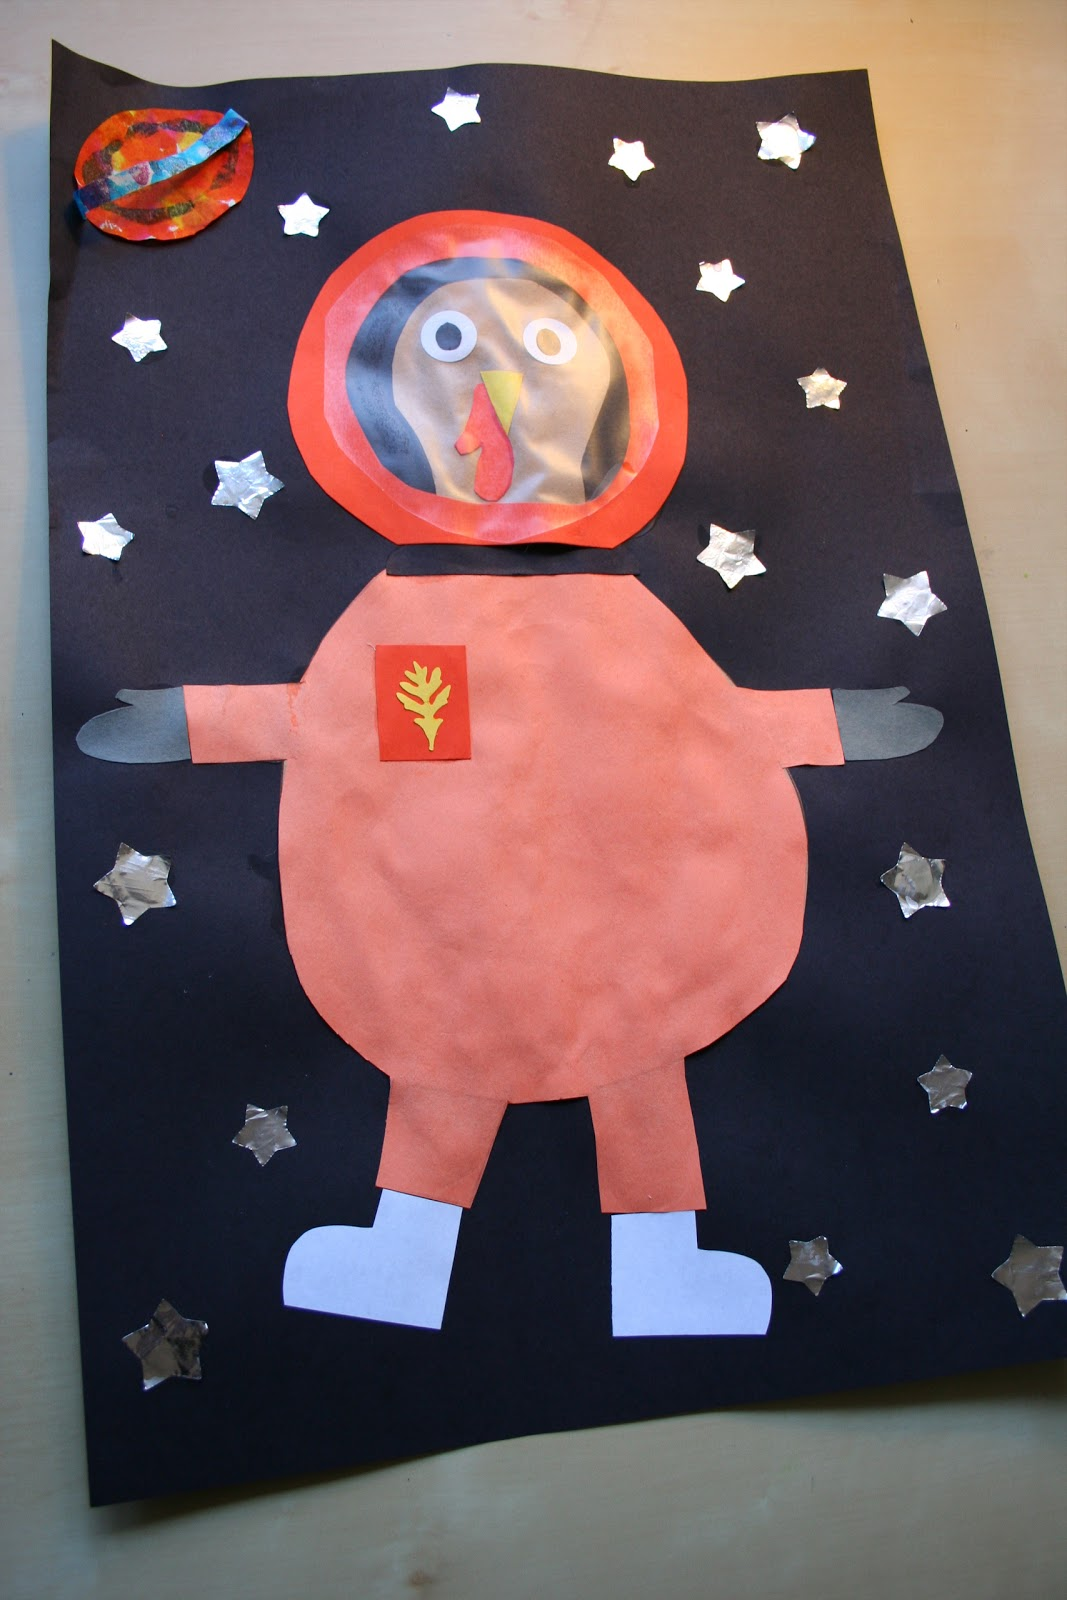 part 2 astronaut turkey aka turkey not - Pictures Of Turkeys For Kids 2